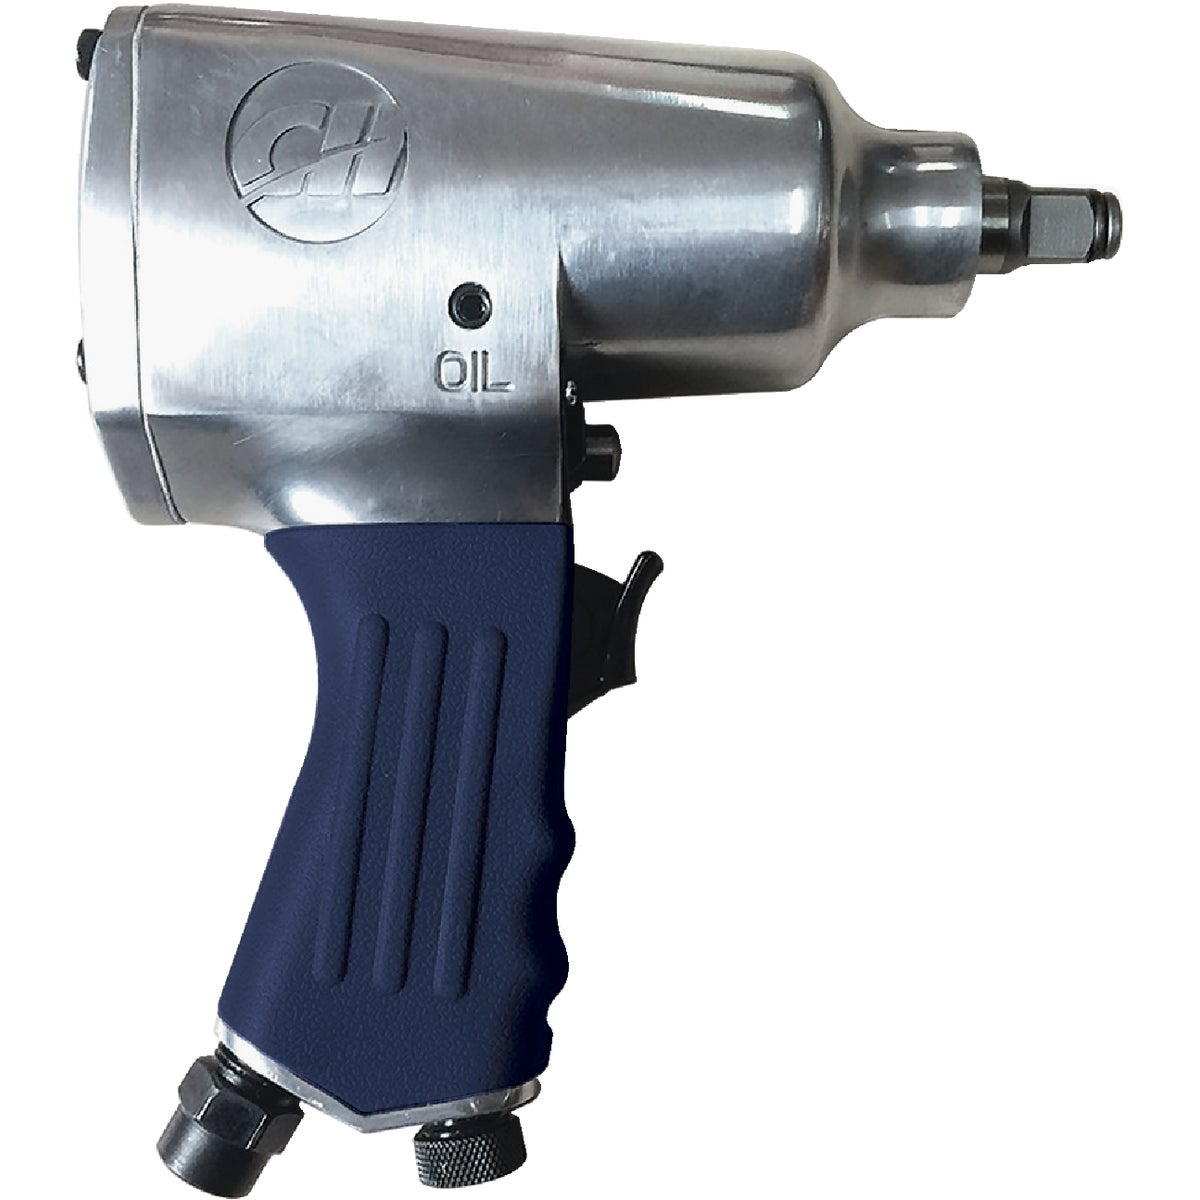 "1/2"" IMPACT WRENCH - TL050299AV by Campbell Hausfeld Co"